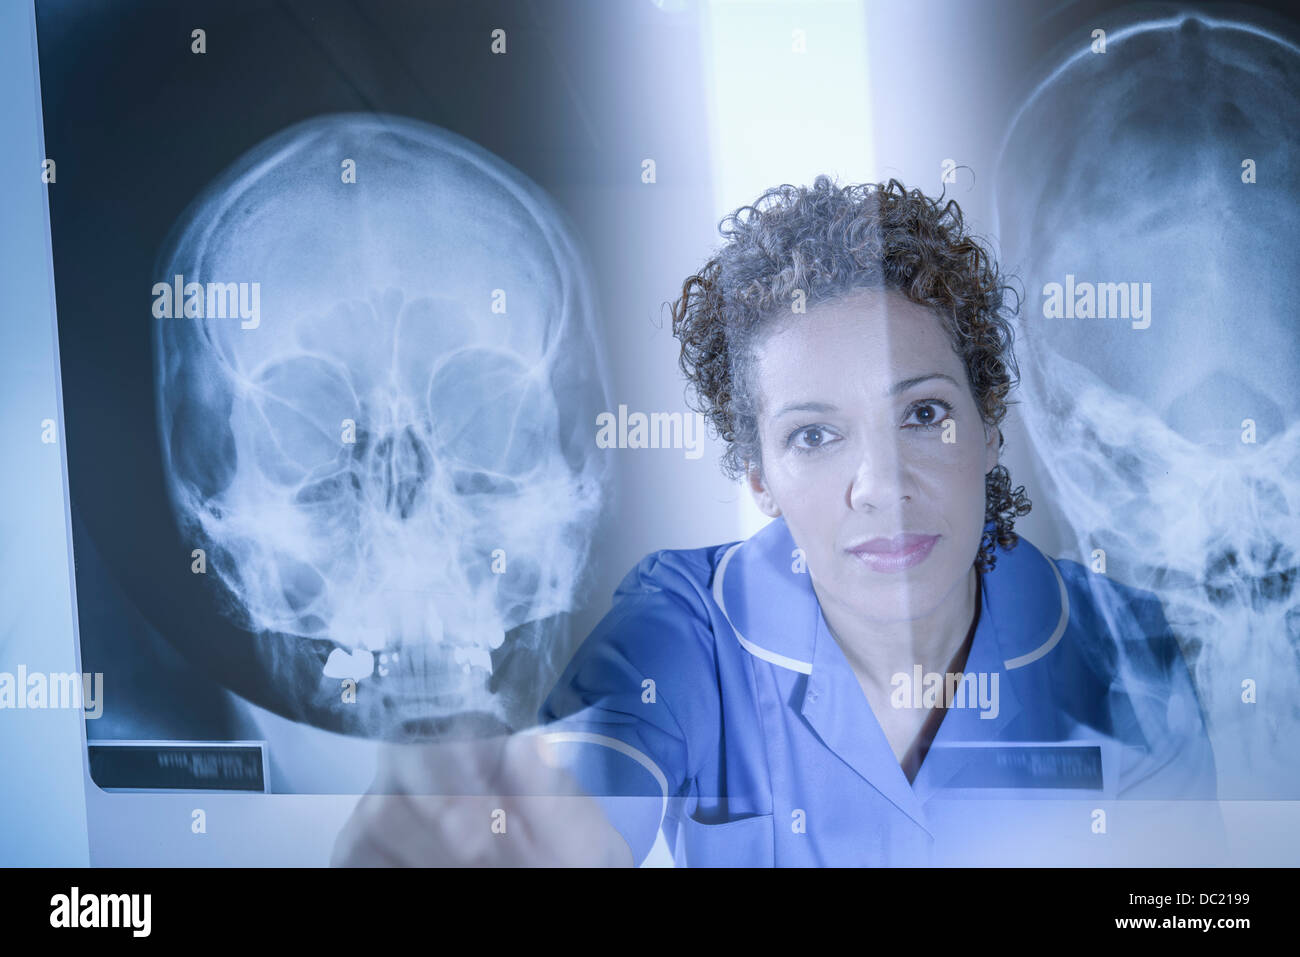 Nurse pointing at xray results displayed on screen - Stock Image